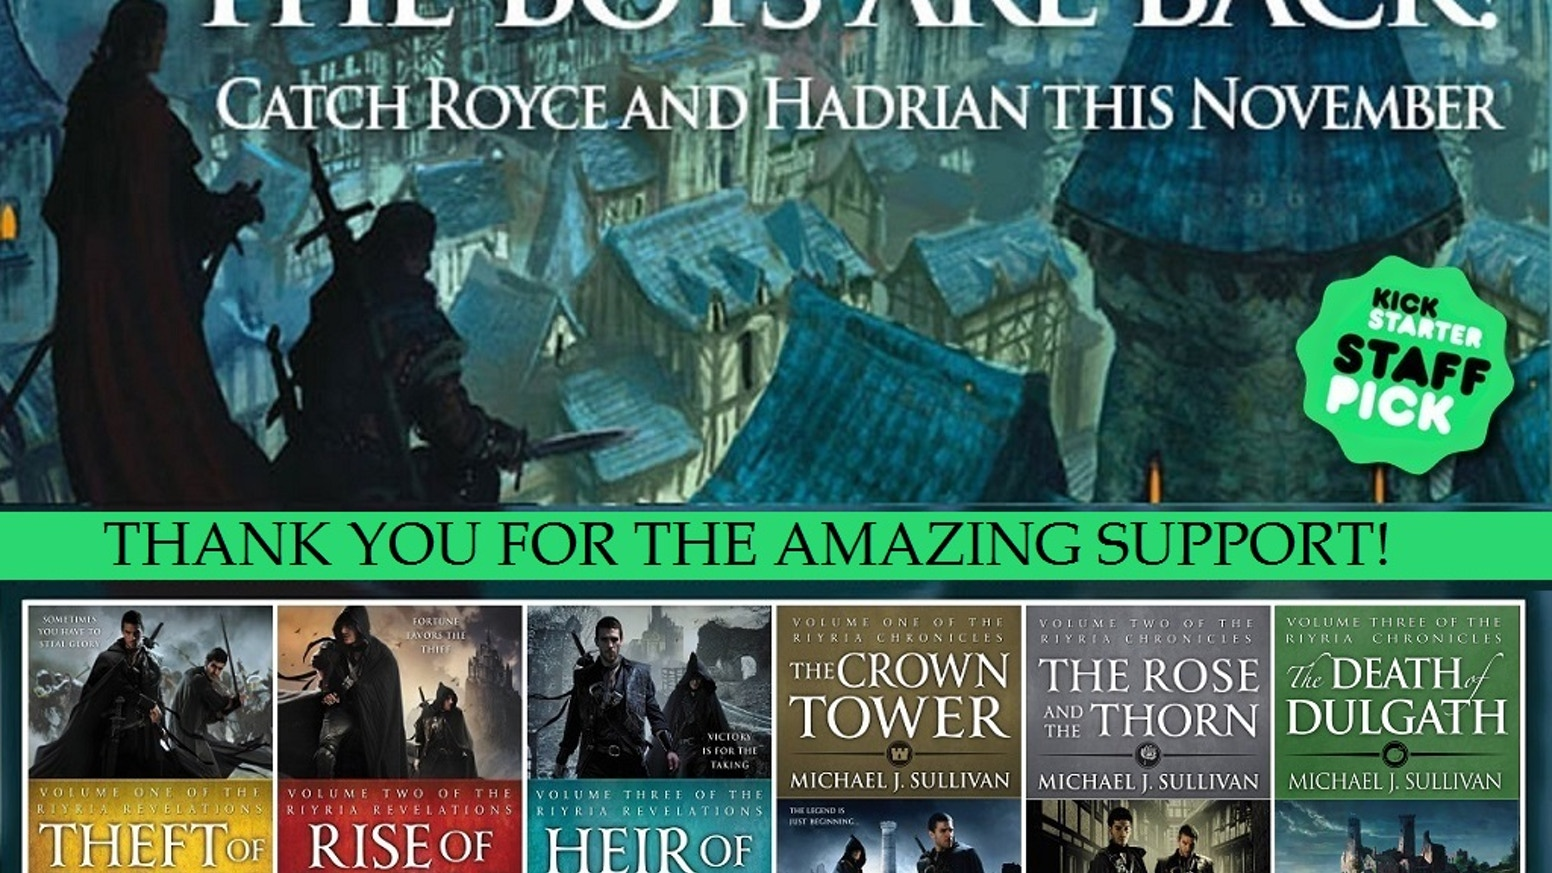 Michael J. Sullivan's unlikely heroes, Royce and Hadrian, return in a classic fantasy for both Riyria veterans and first-time readers.